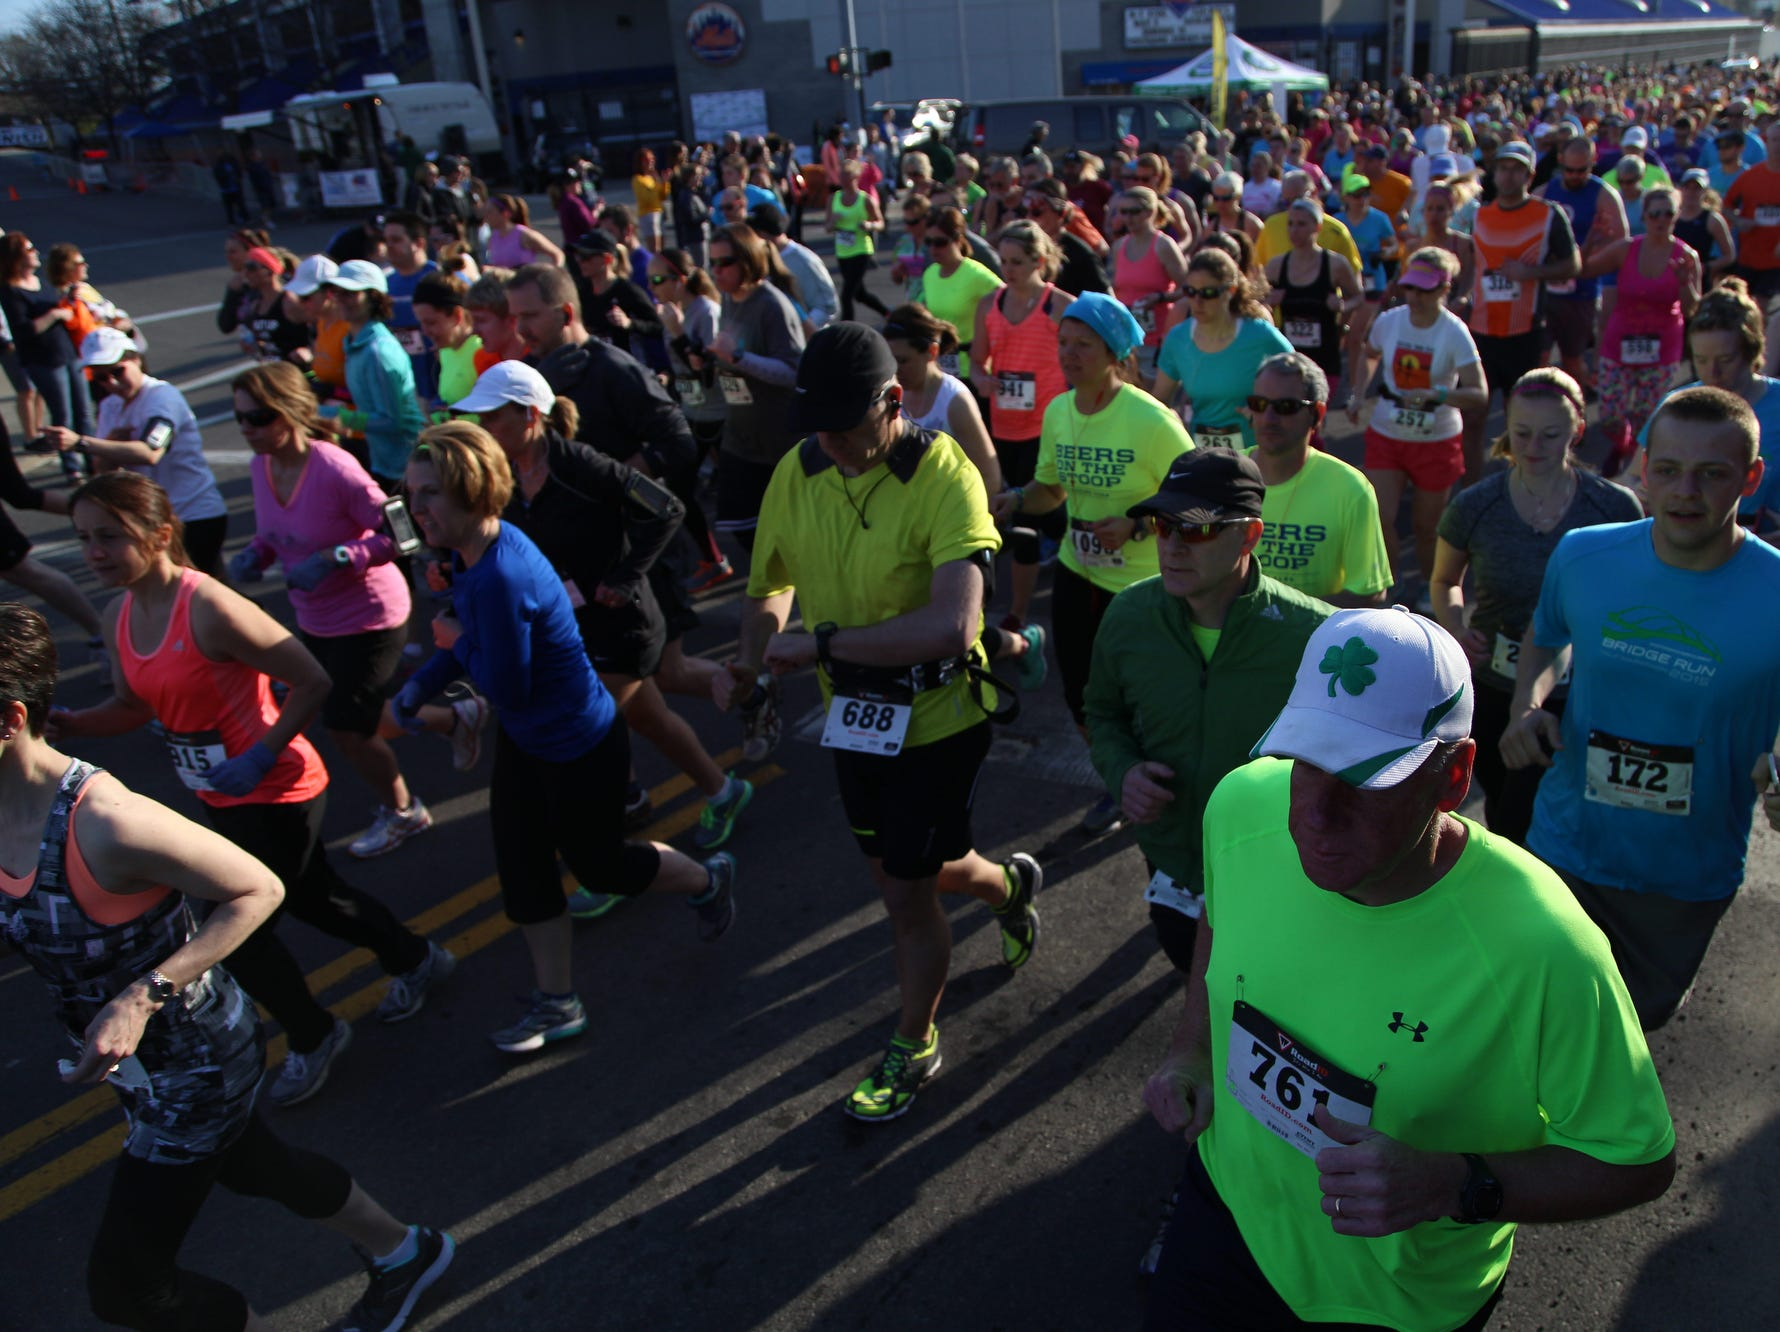 2015: Hundreds of runners participated in the Greater Binghamton Bridge Run Half-Marathon on Sunday, May 3, 2015.